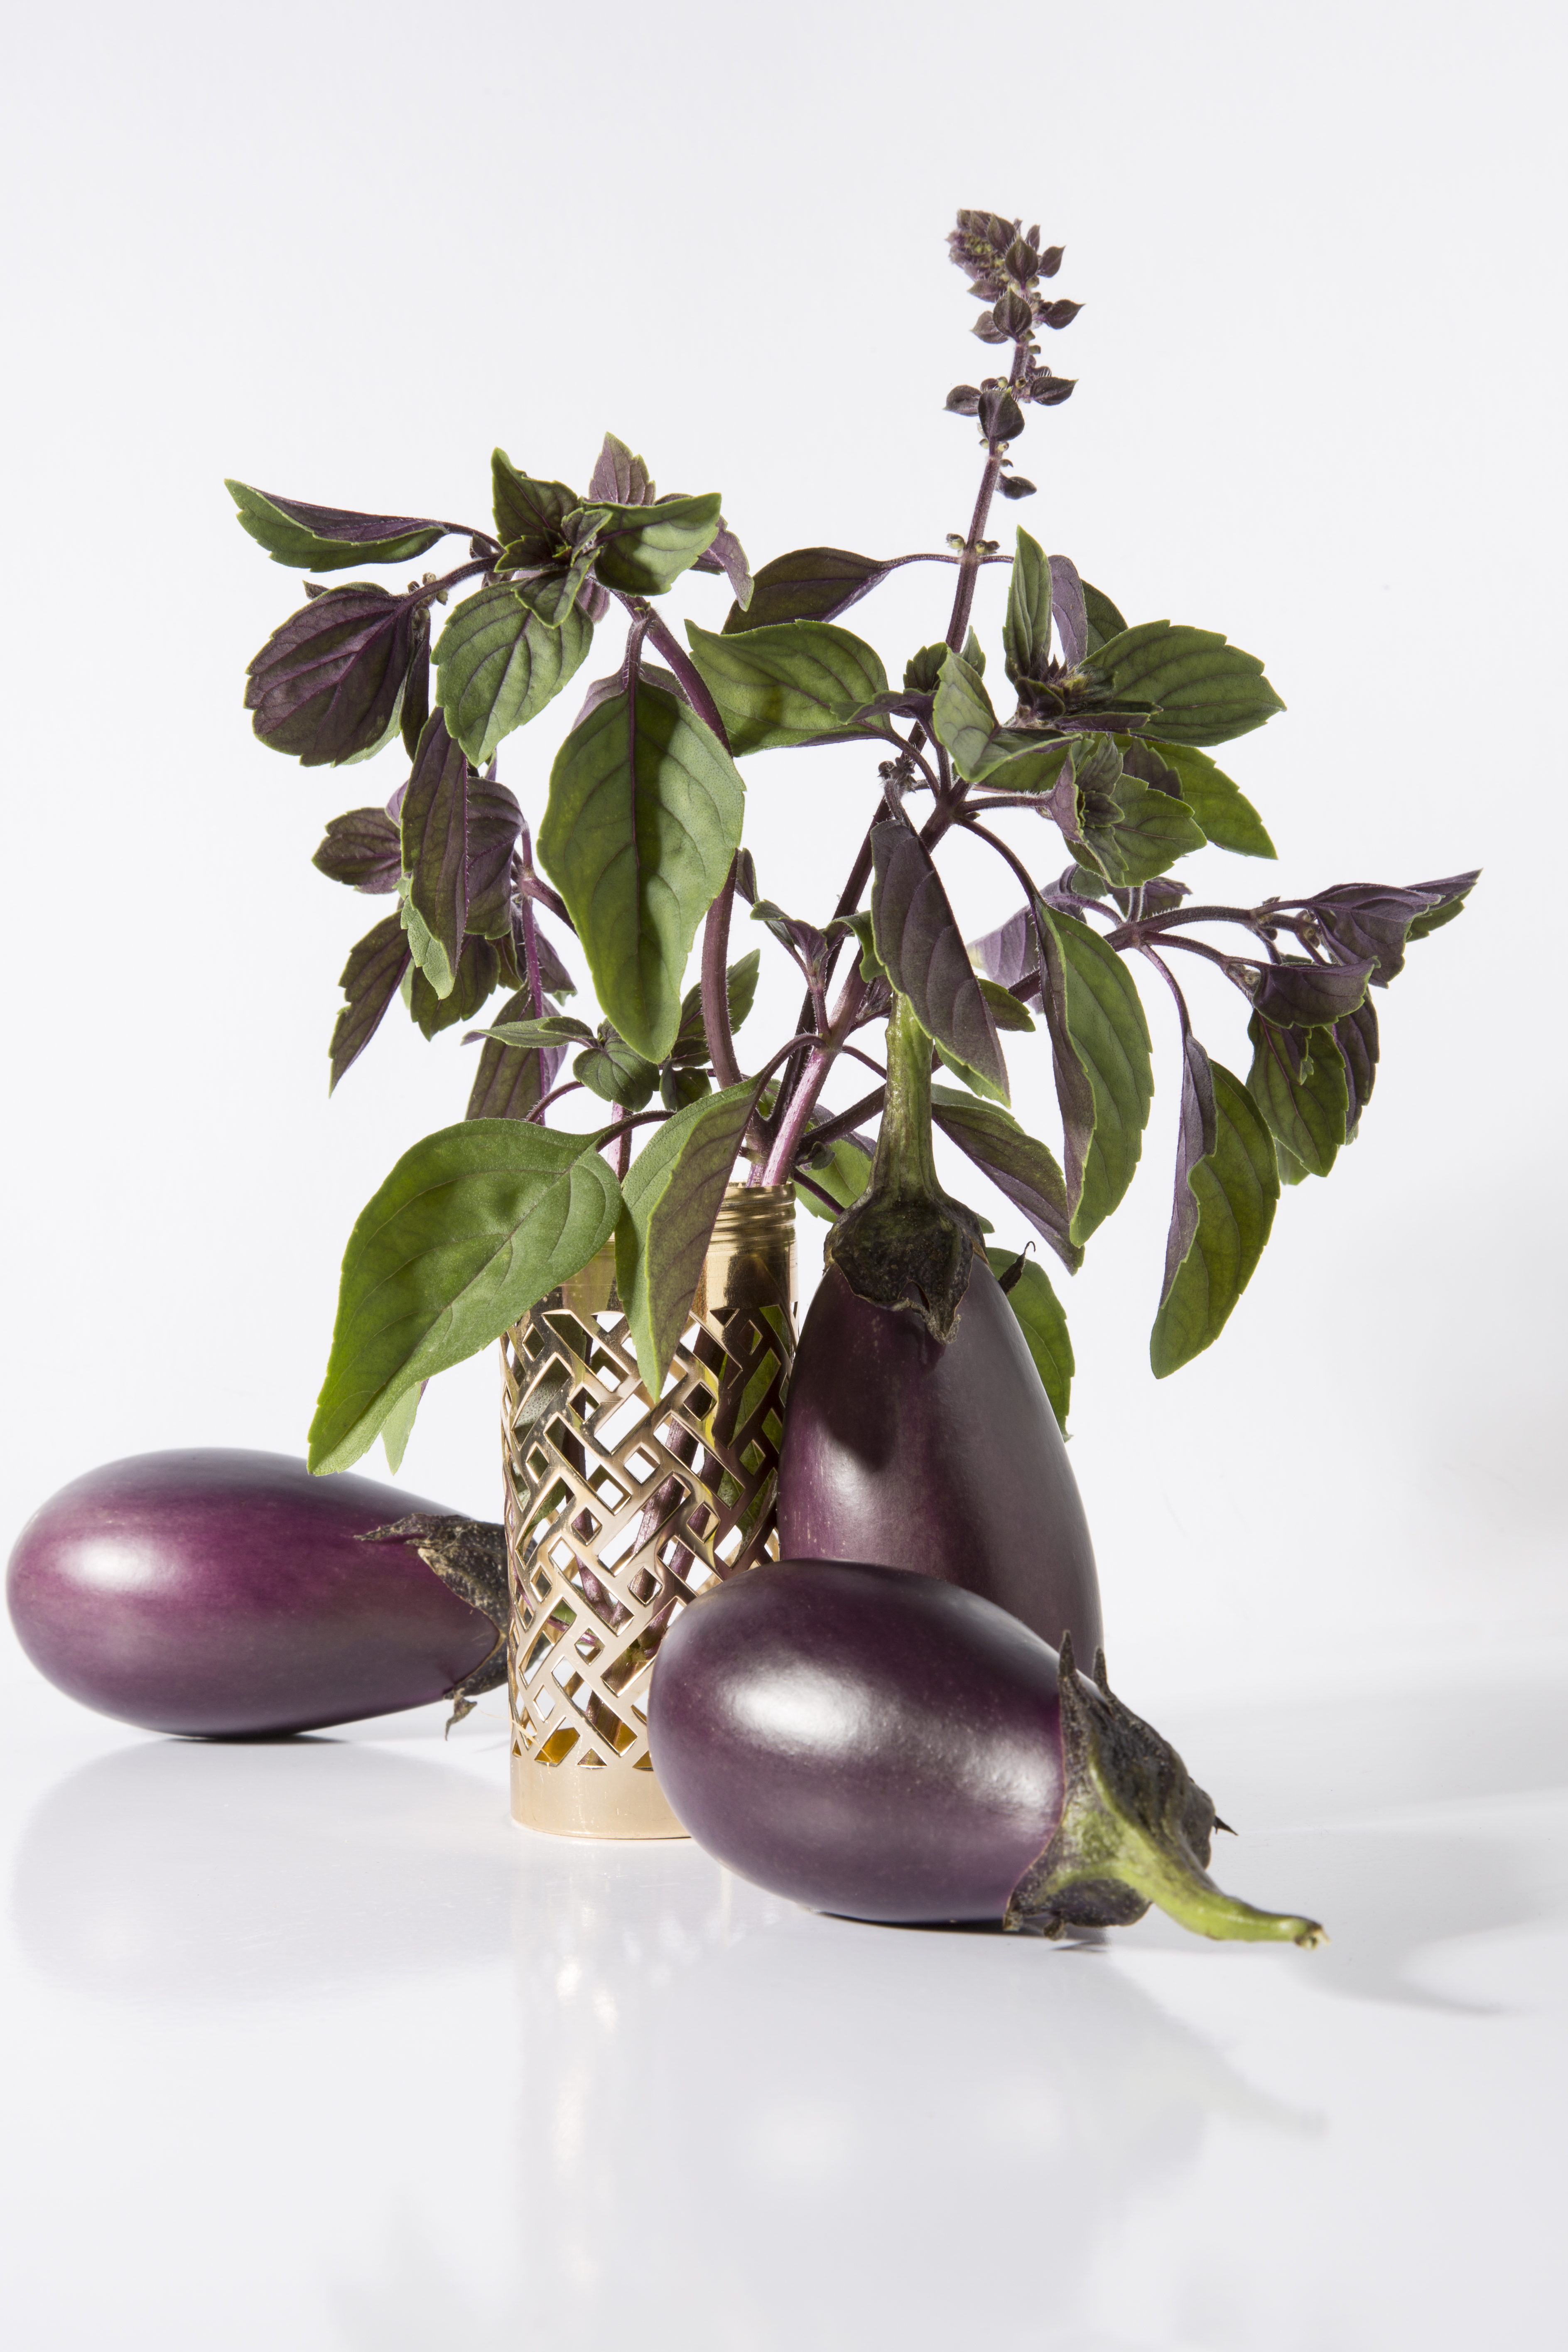 Eggplants and Basil